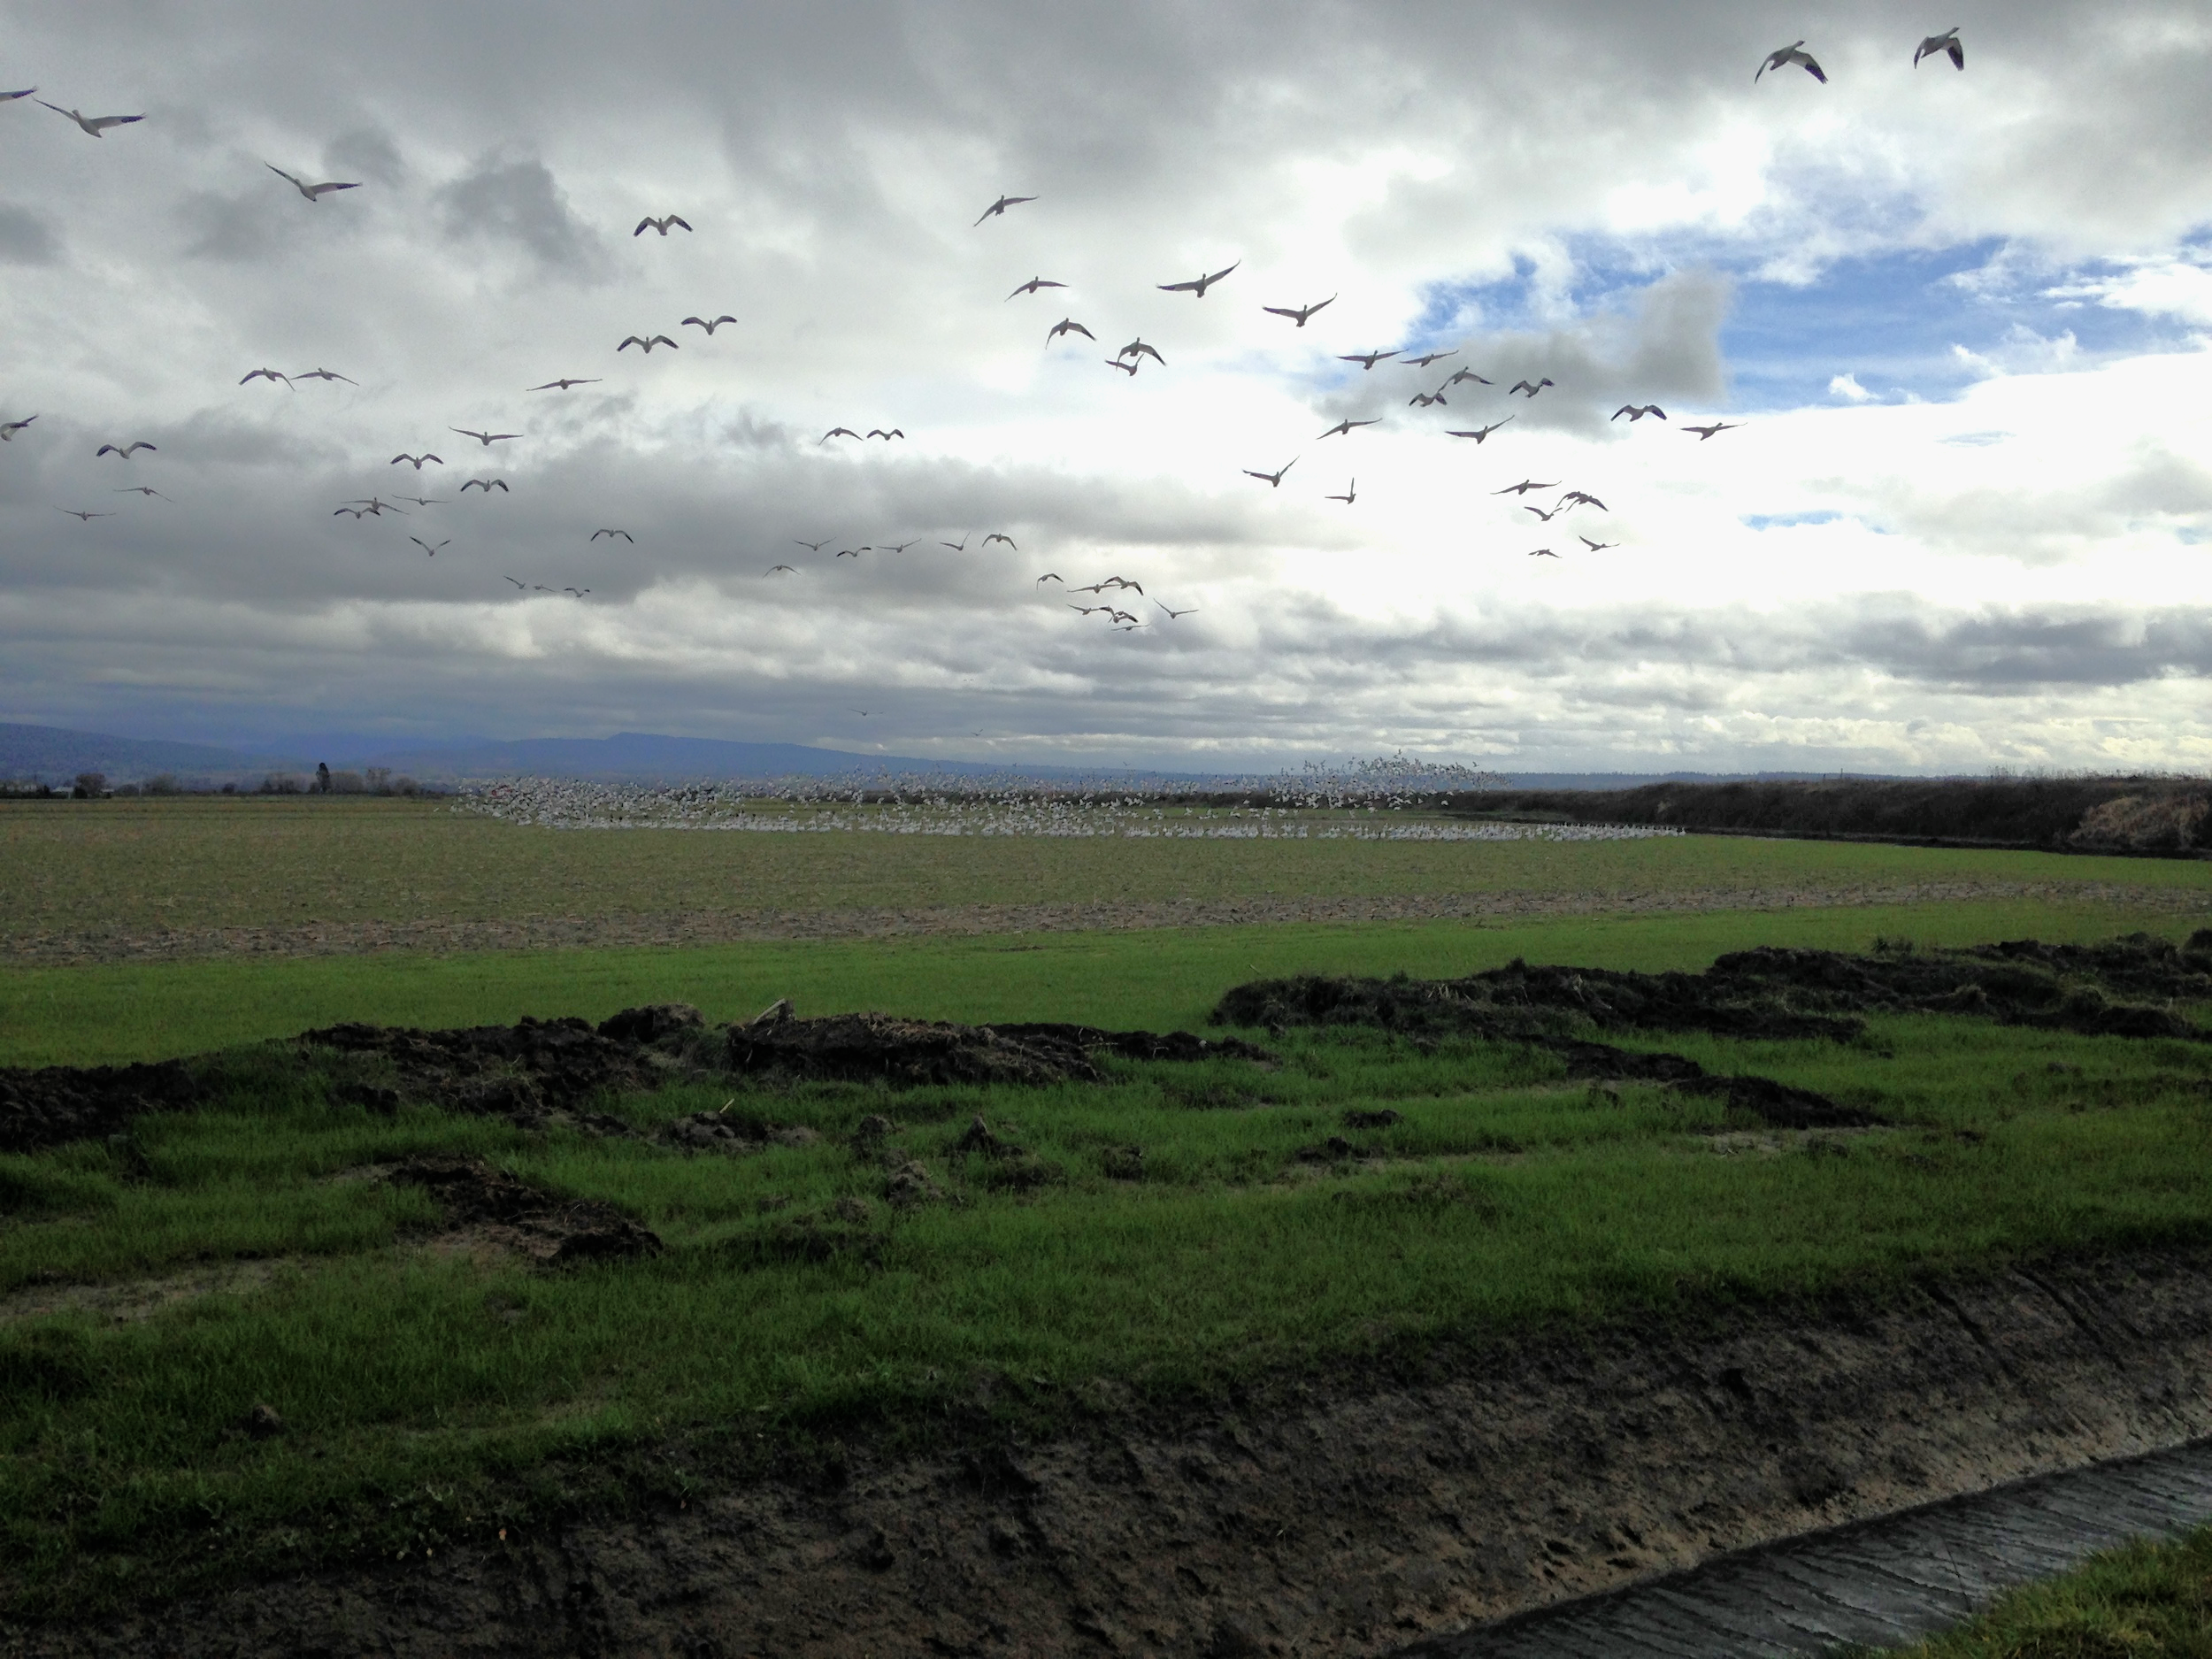 A group of snow geese are startled. The entire flock, approximately 2,000 birds are in the group, take to the skies to join their friends on the other side of the irrigation ditch. The squawking of the birds was extra loud as they flew overhead.